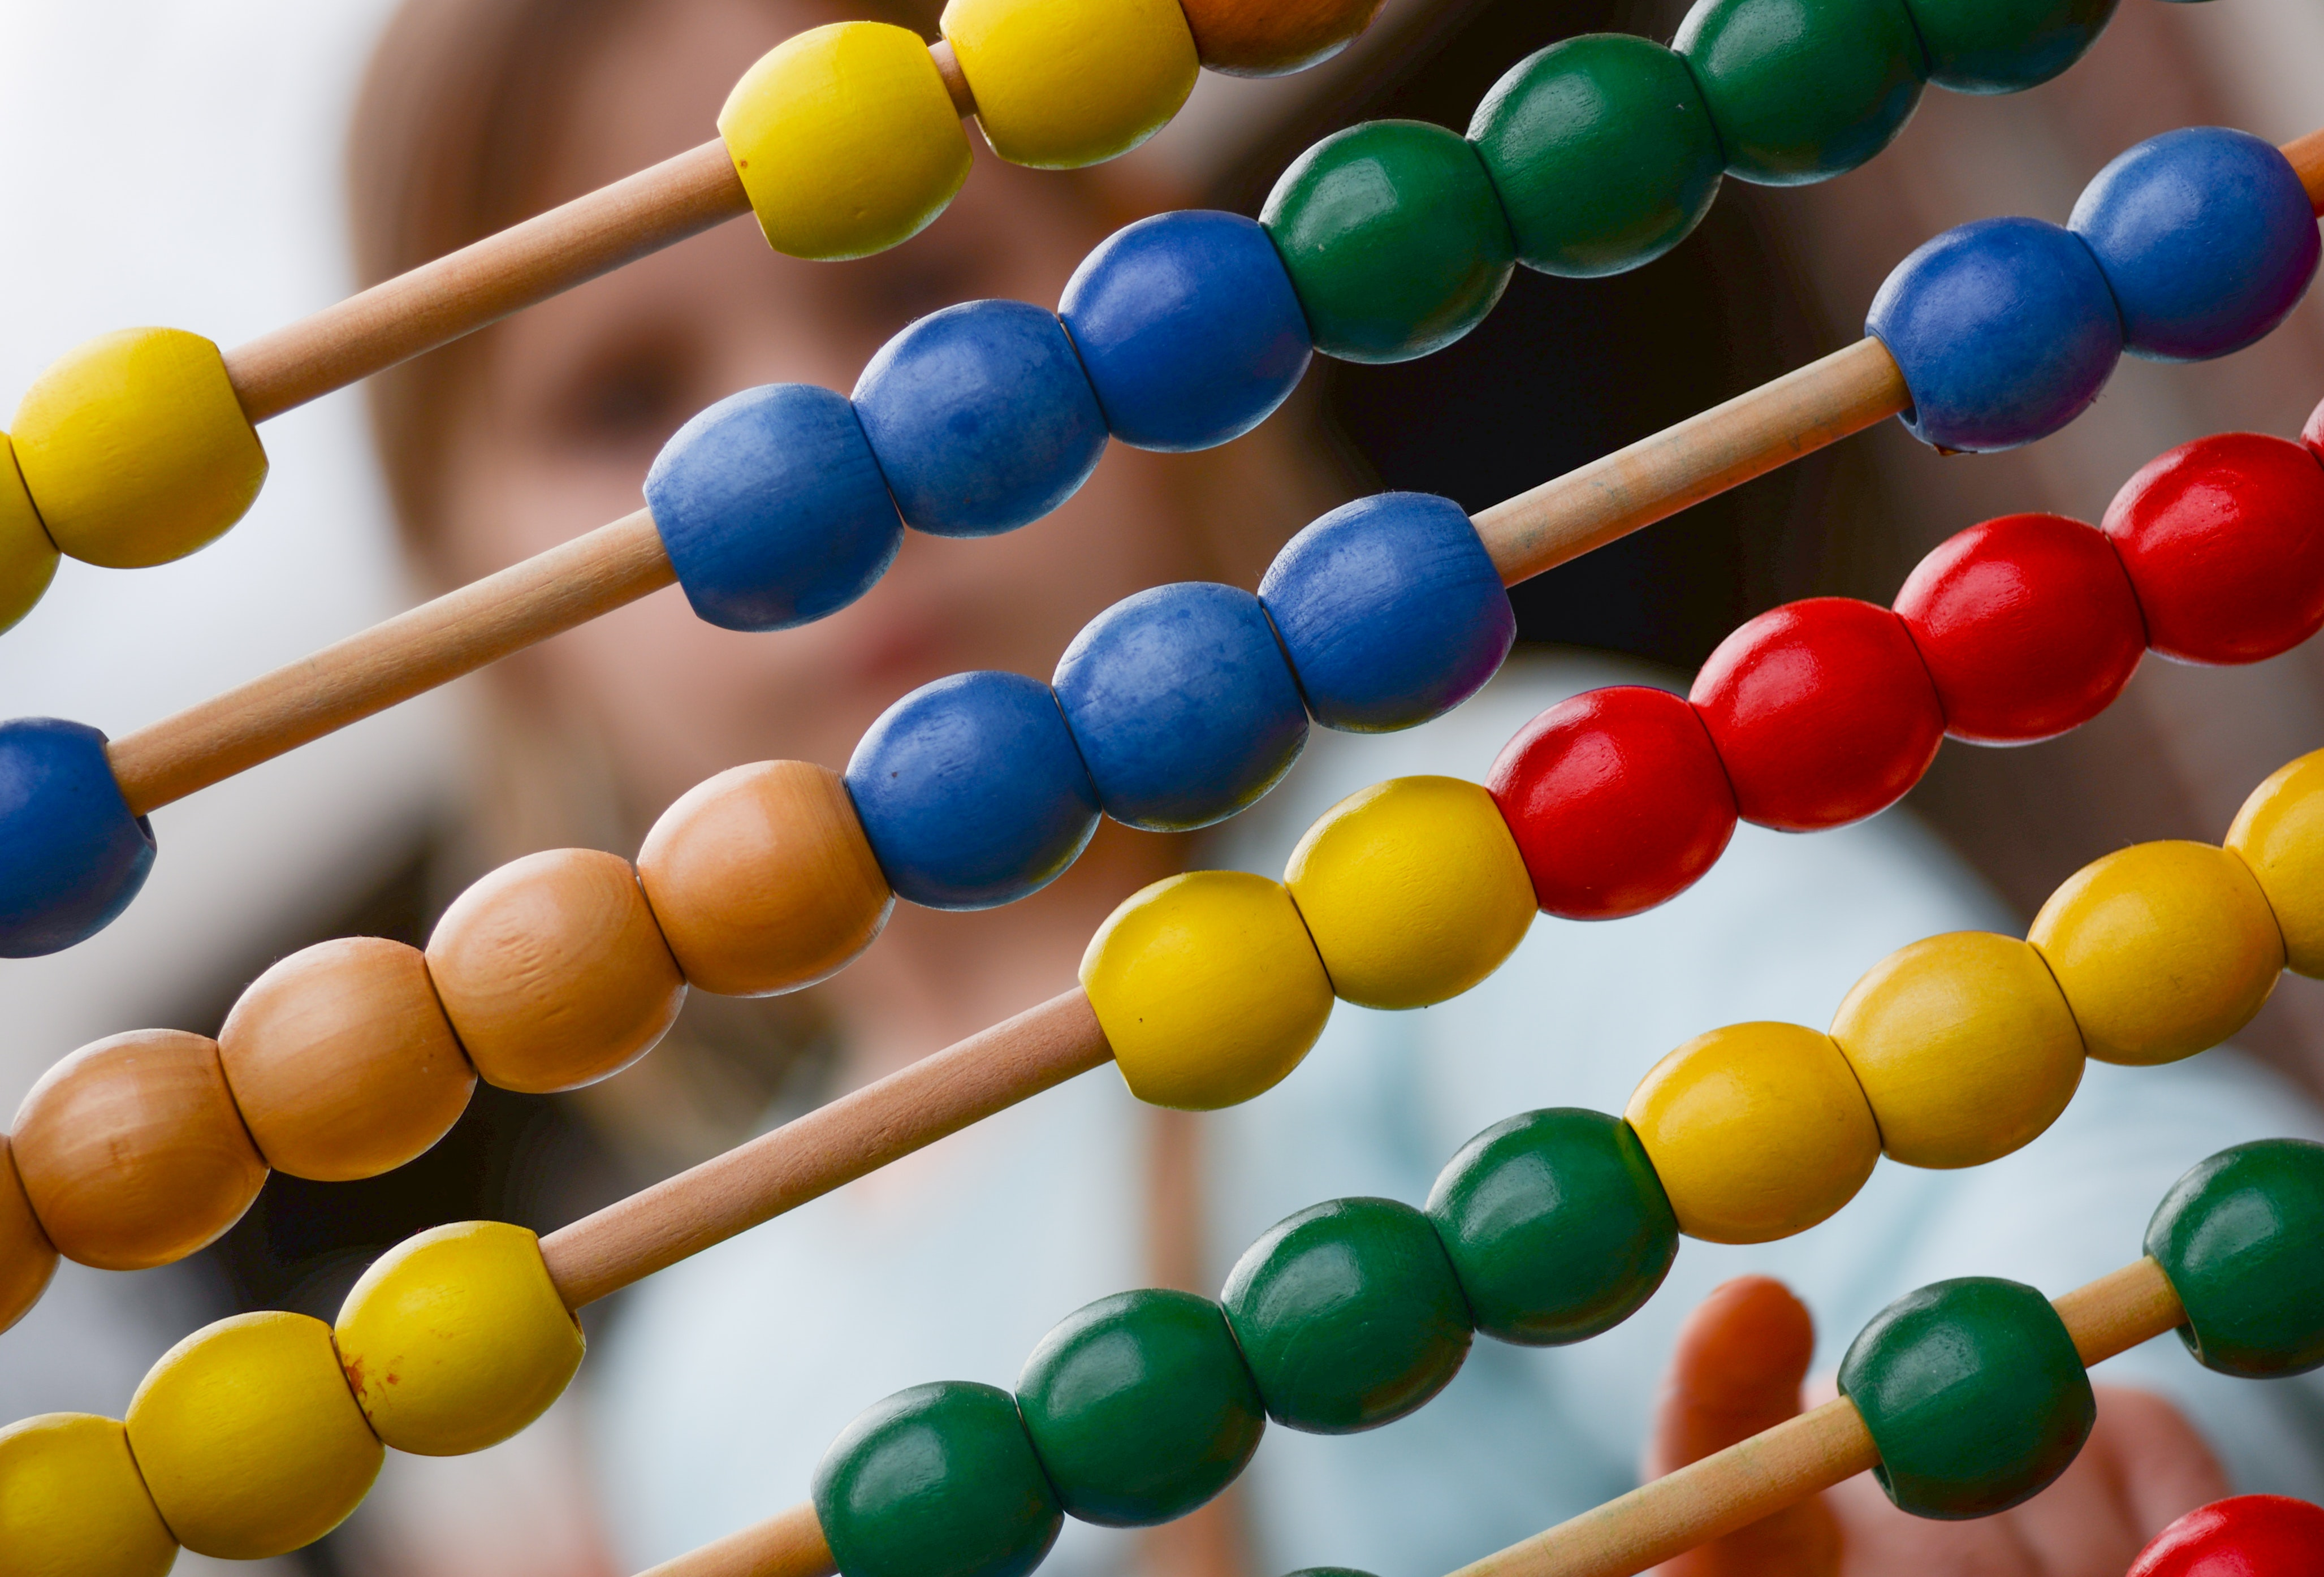 multicolored-abacus-photography-1019470